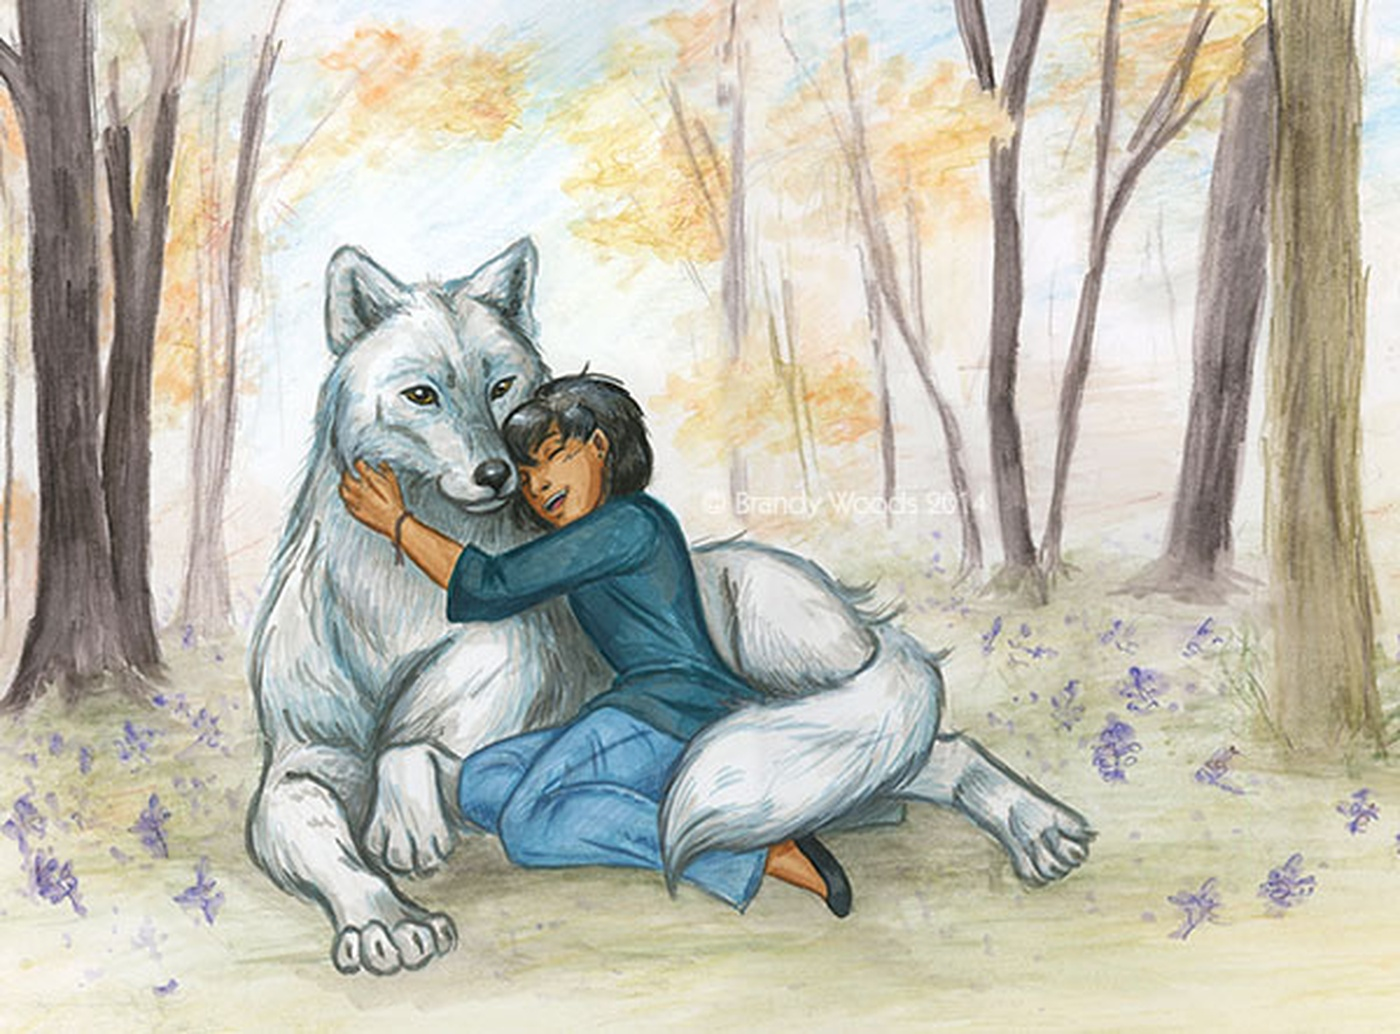 Illustration Quebec Brandy Woods Brother Wolf Storybook